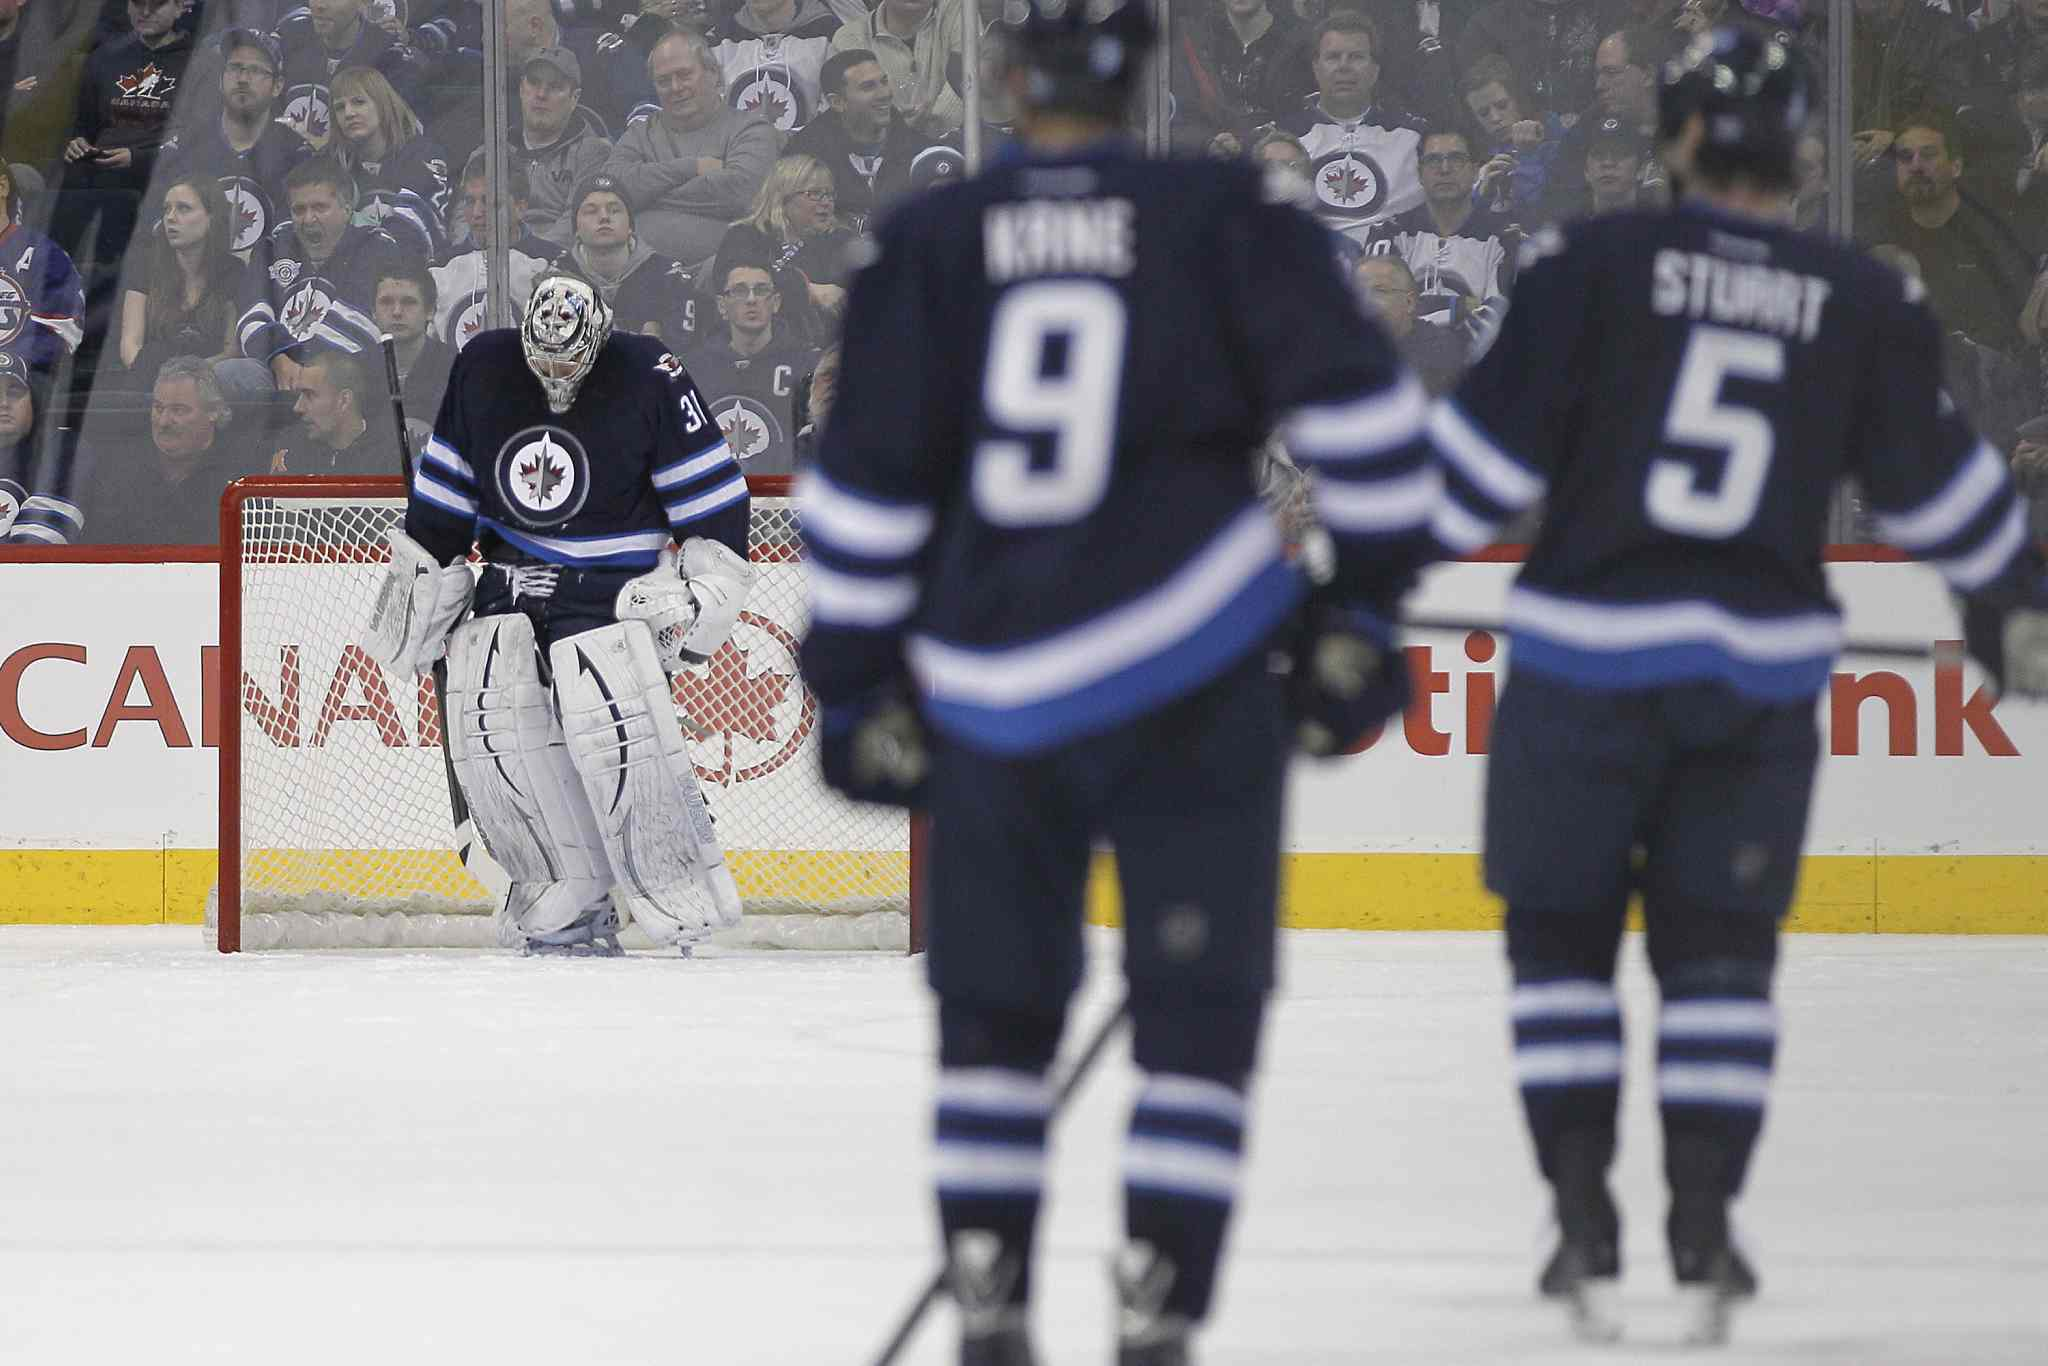 Winnipeg Jets' goaltender Ondrej Pavelec (31) hangs his head after being scored on by Tampa Bay Lightning's Ondrej Palat (18) during second period NHL action in Winnipeg on Tuesday.